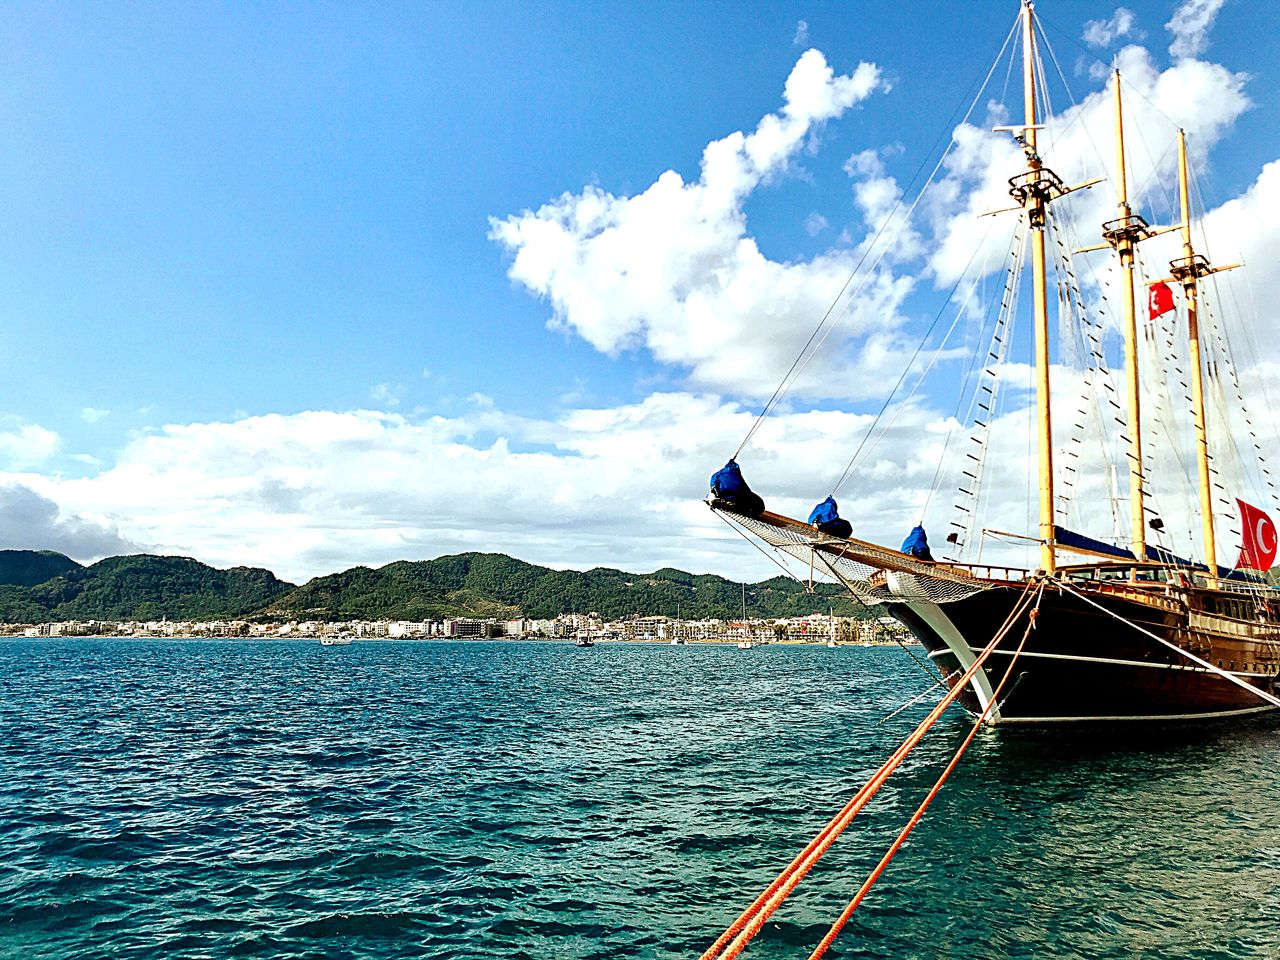 water, nautical vessel, sky, mode of transportation, transportation, cloud - sky, sea, nature, day, sailboat, beauty in nature, no people, scenics - nature, blue, waterfront, mountain, travel, sailing, mast, yacht